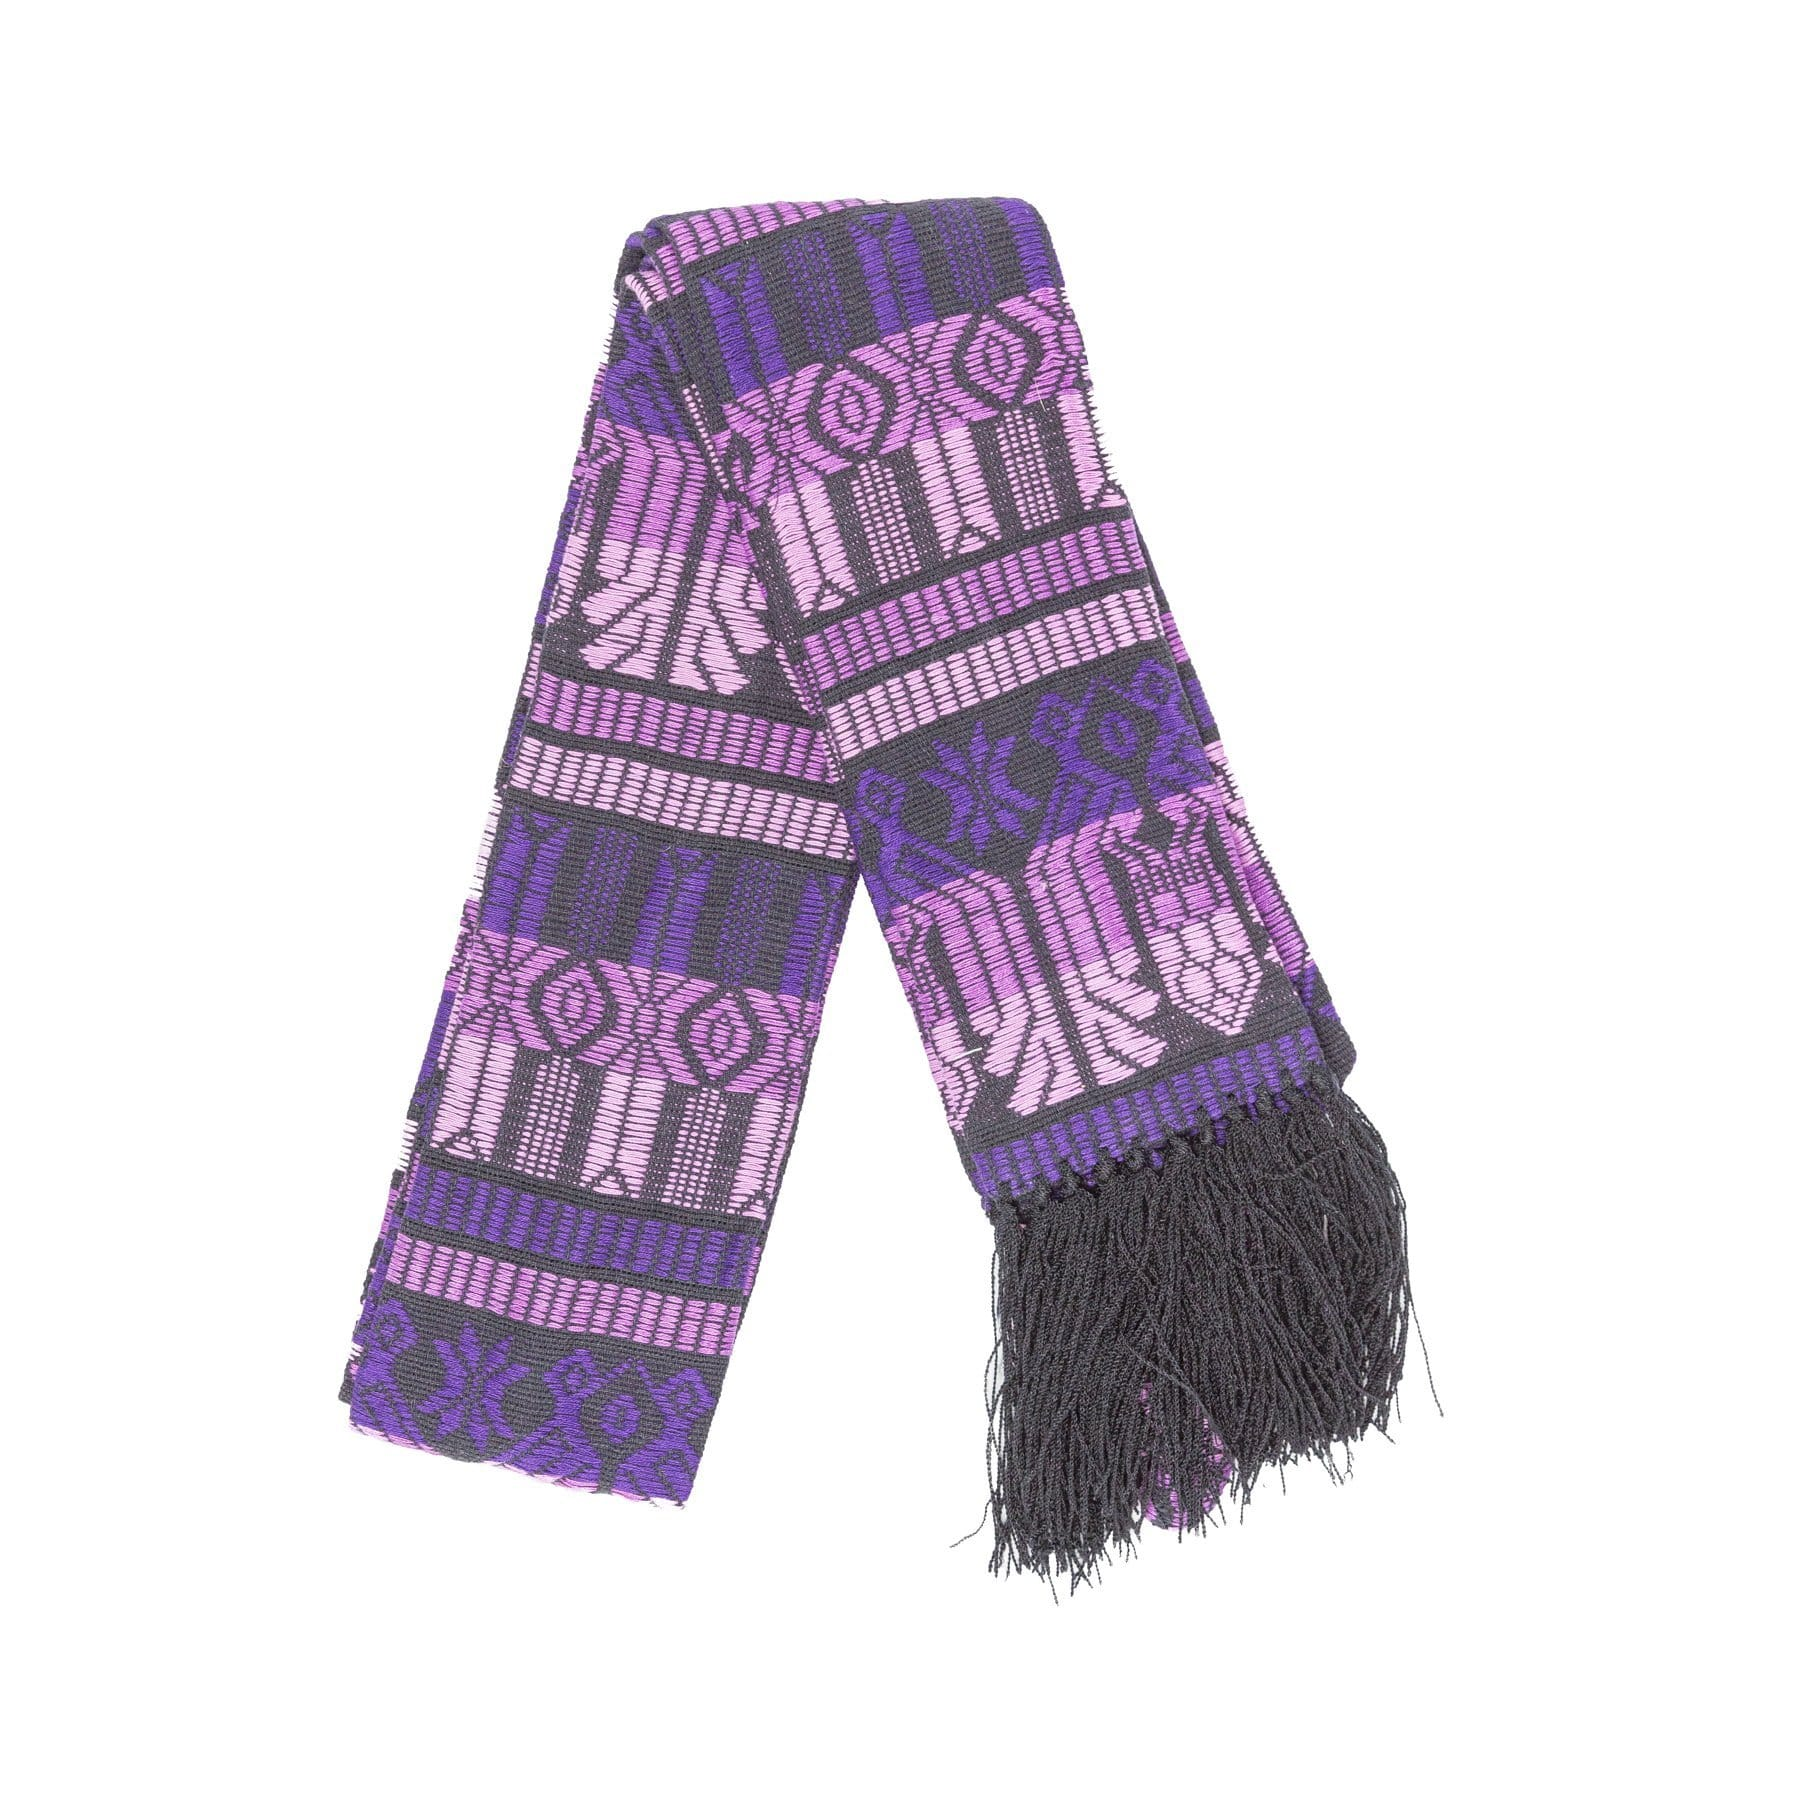 Fair Trade Purple Brocaded Clerical Stole ?id=14022727925813